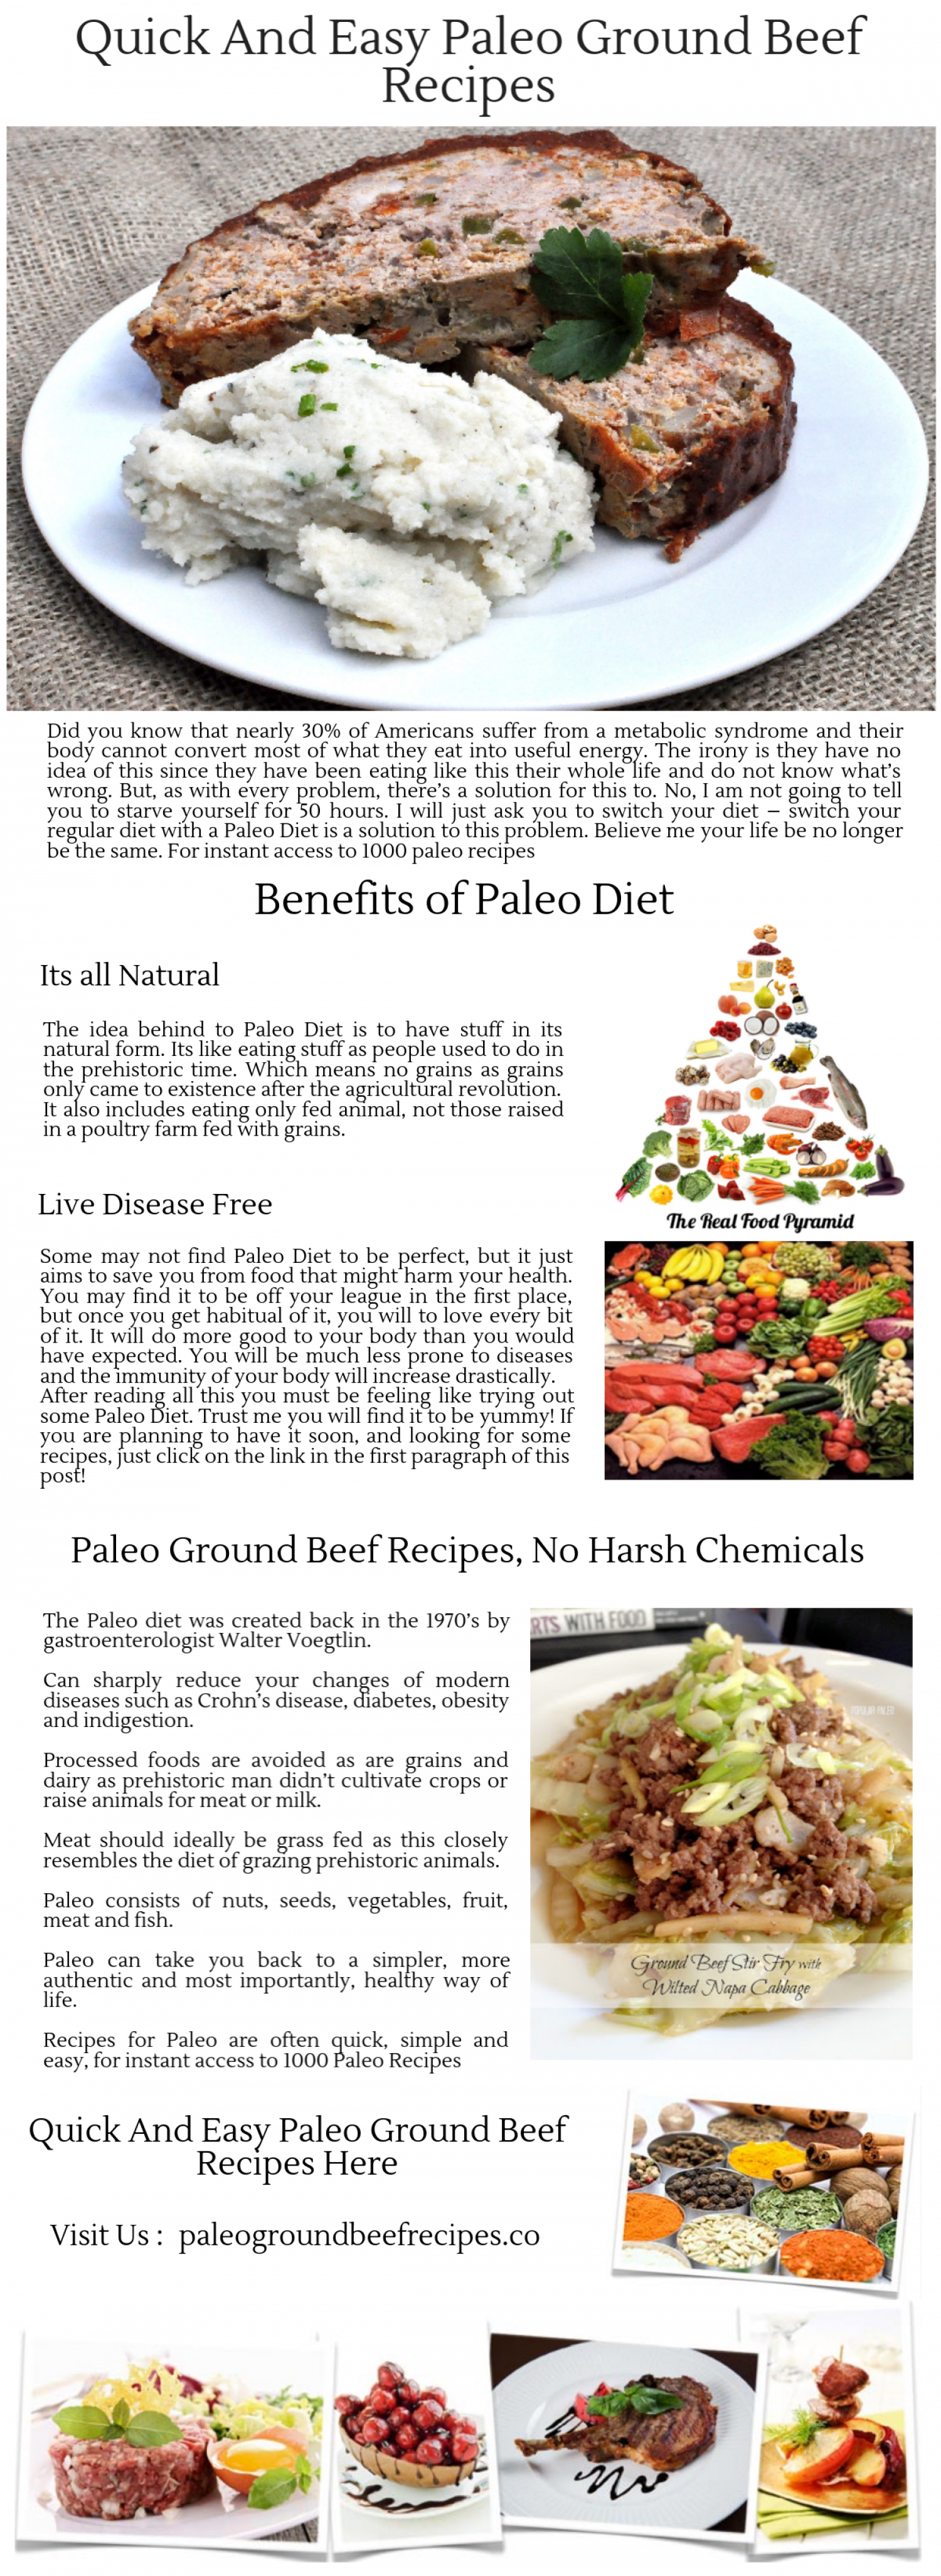 Paleo Ground Beef Recipes - Visual.ly